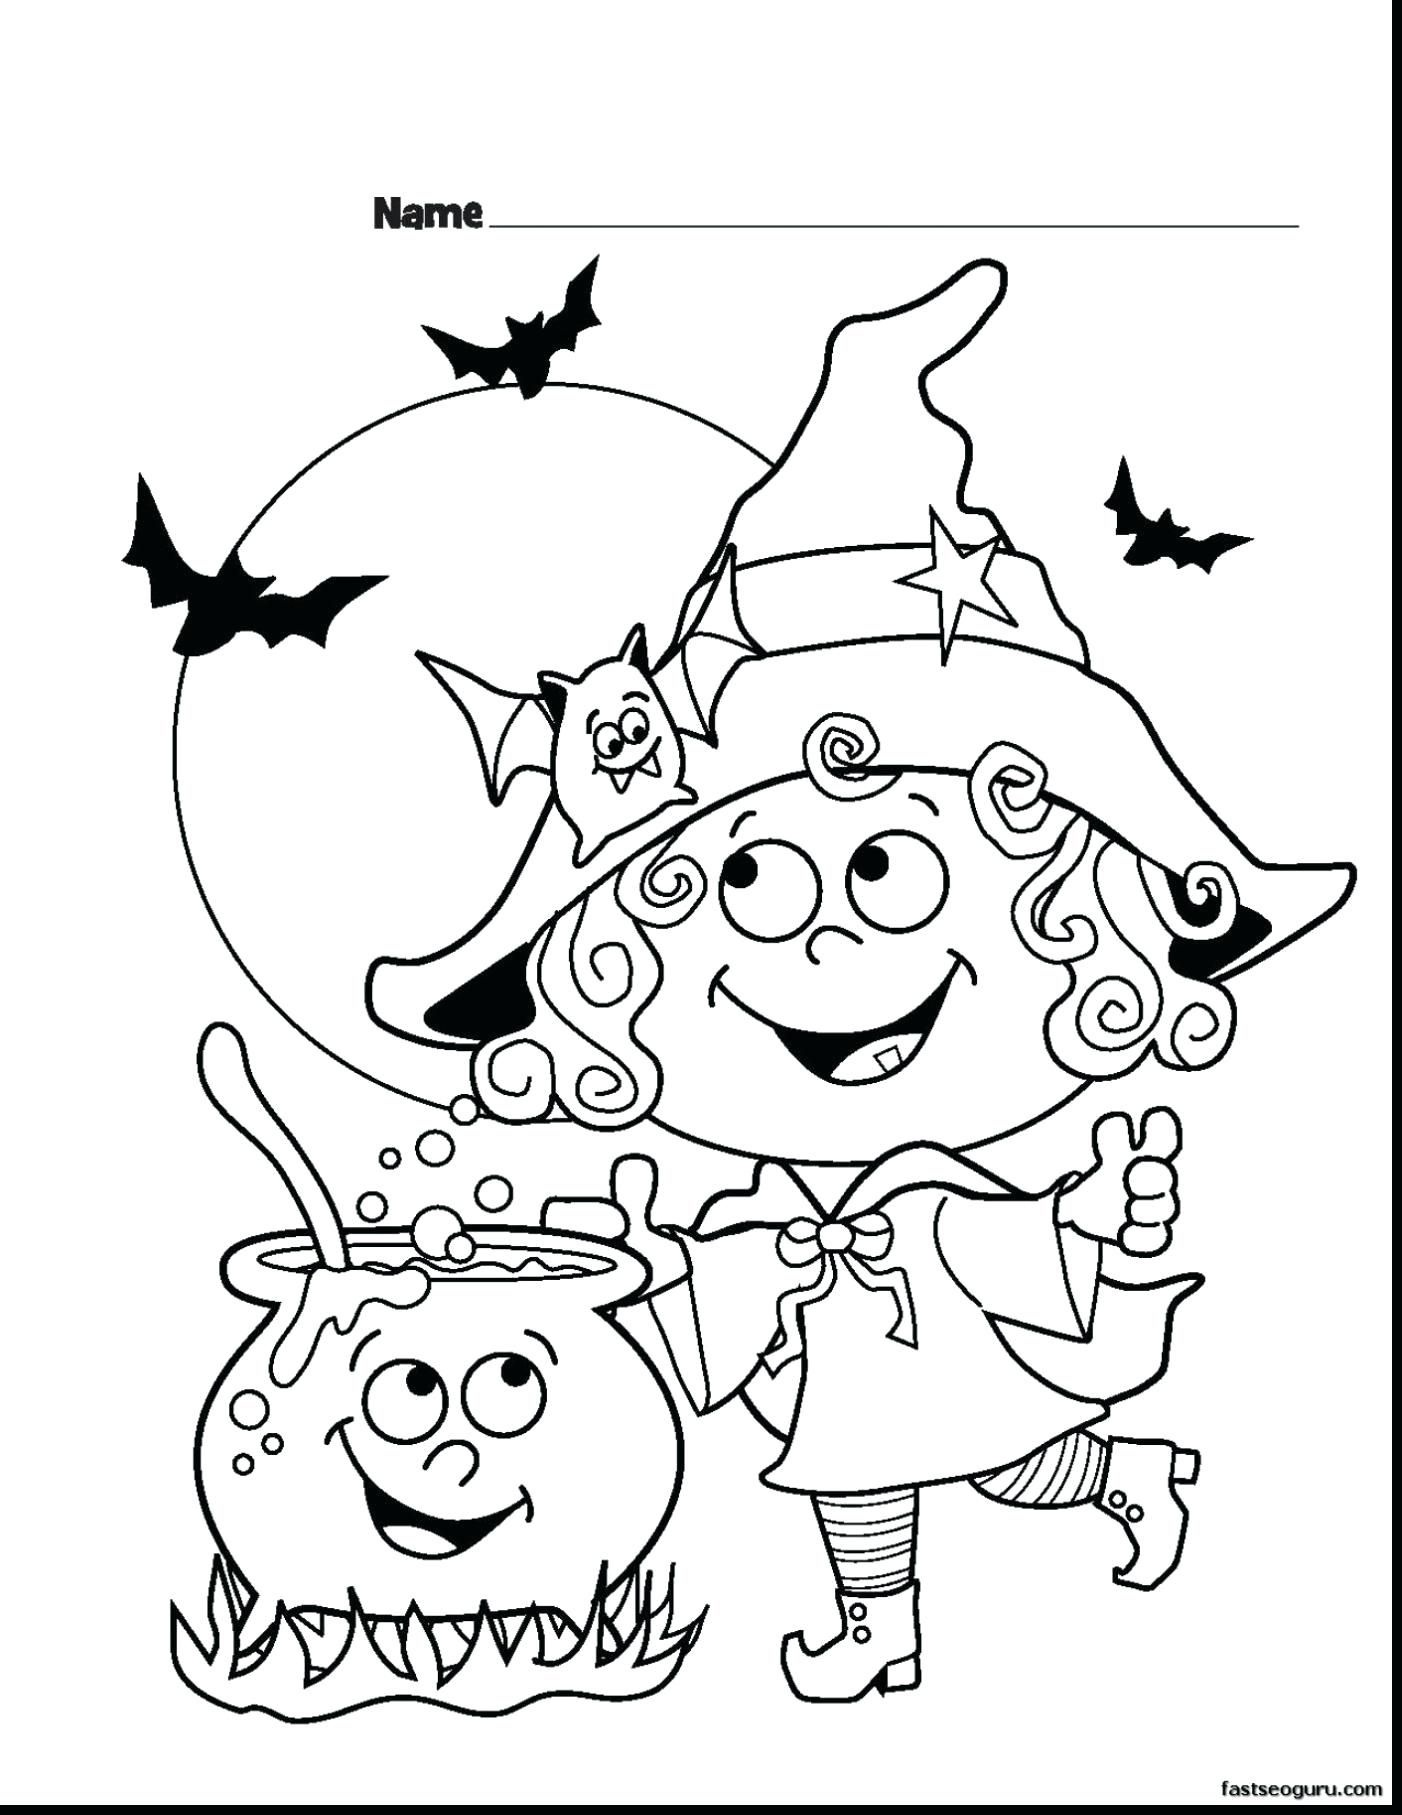 Free Printable Halloween Coloring Pages For Preschoolers With - Free Online Printable Halloween Coloring Pages